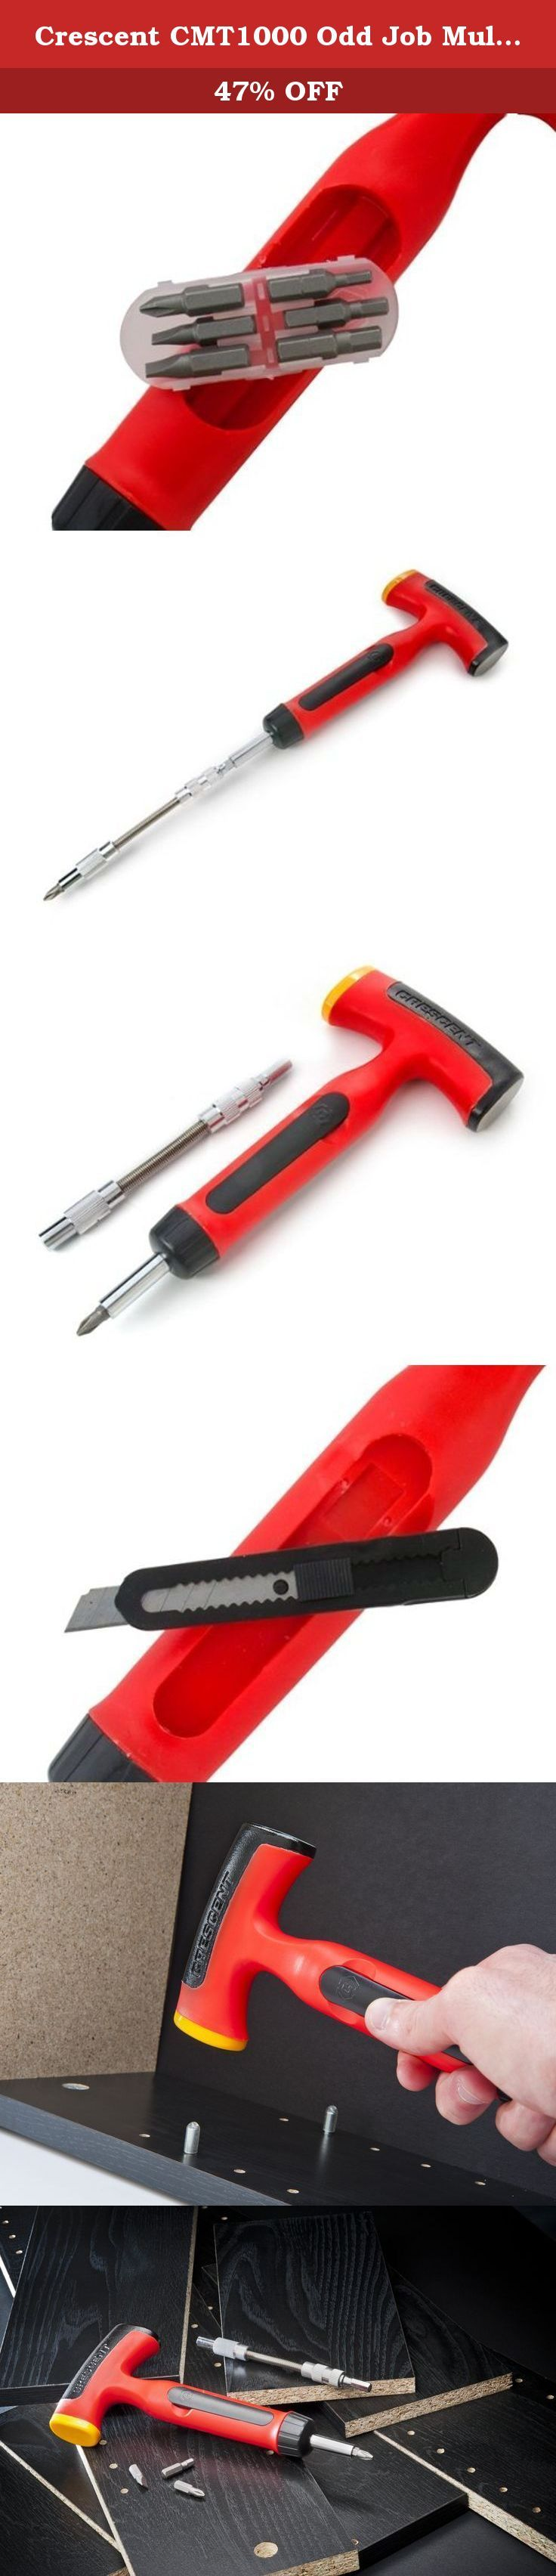 Crescent CMT1000 Odd Job Multi-Tool, Red/Black. The Crescent Odd Job is the official tool of 1,000 little things. Sized right for kitchen drawer, college dorm, condos and apartment, boats and cars. 11 Tools in One. The one tool for assembling, fixing and hanging in every room of the house. 6 Screwdriver bits included are Phillips, Slotted and Hex bits.